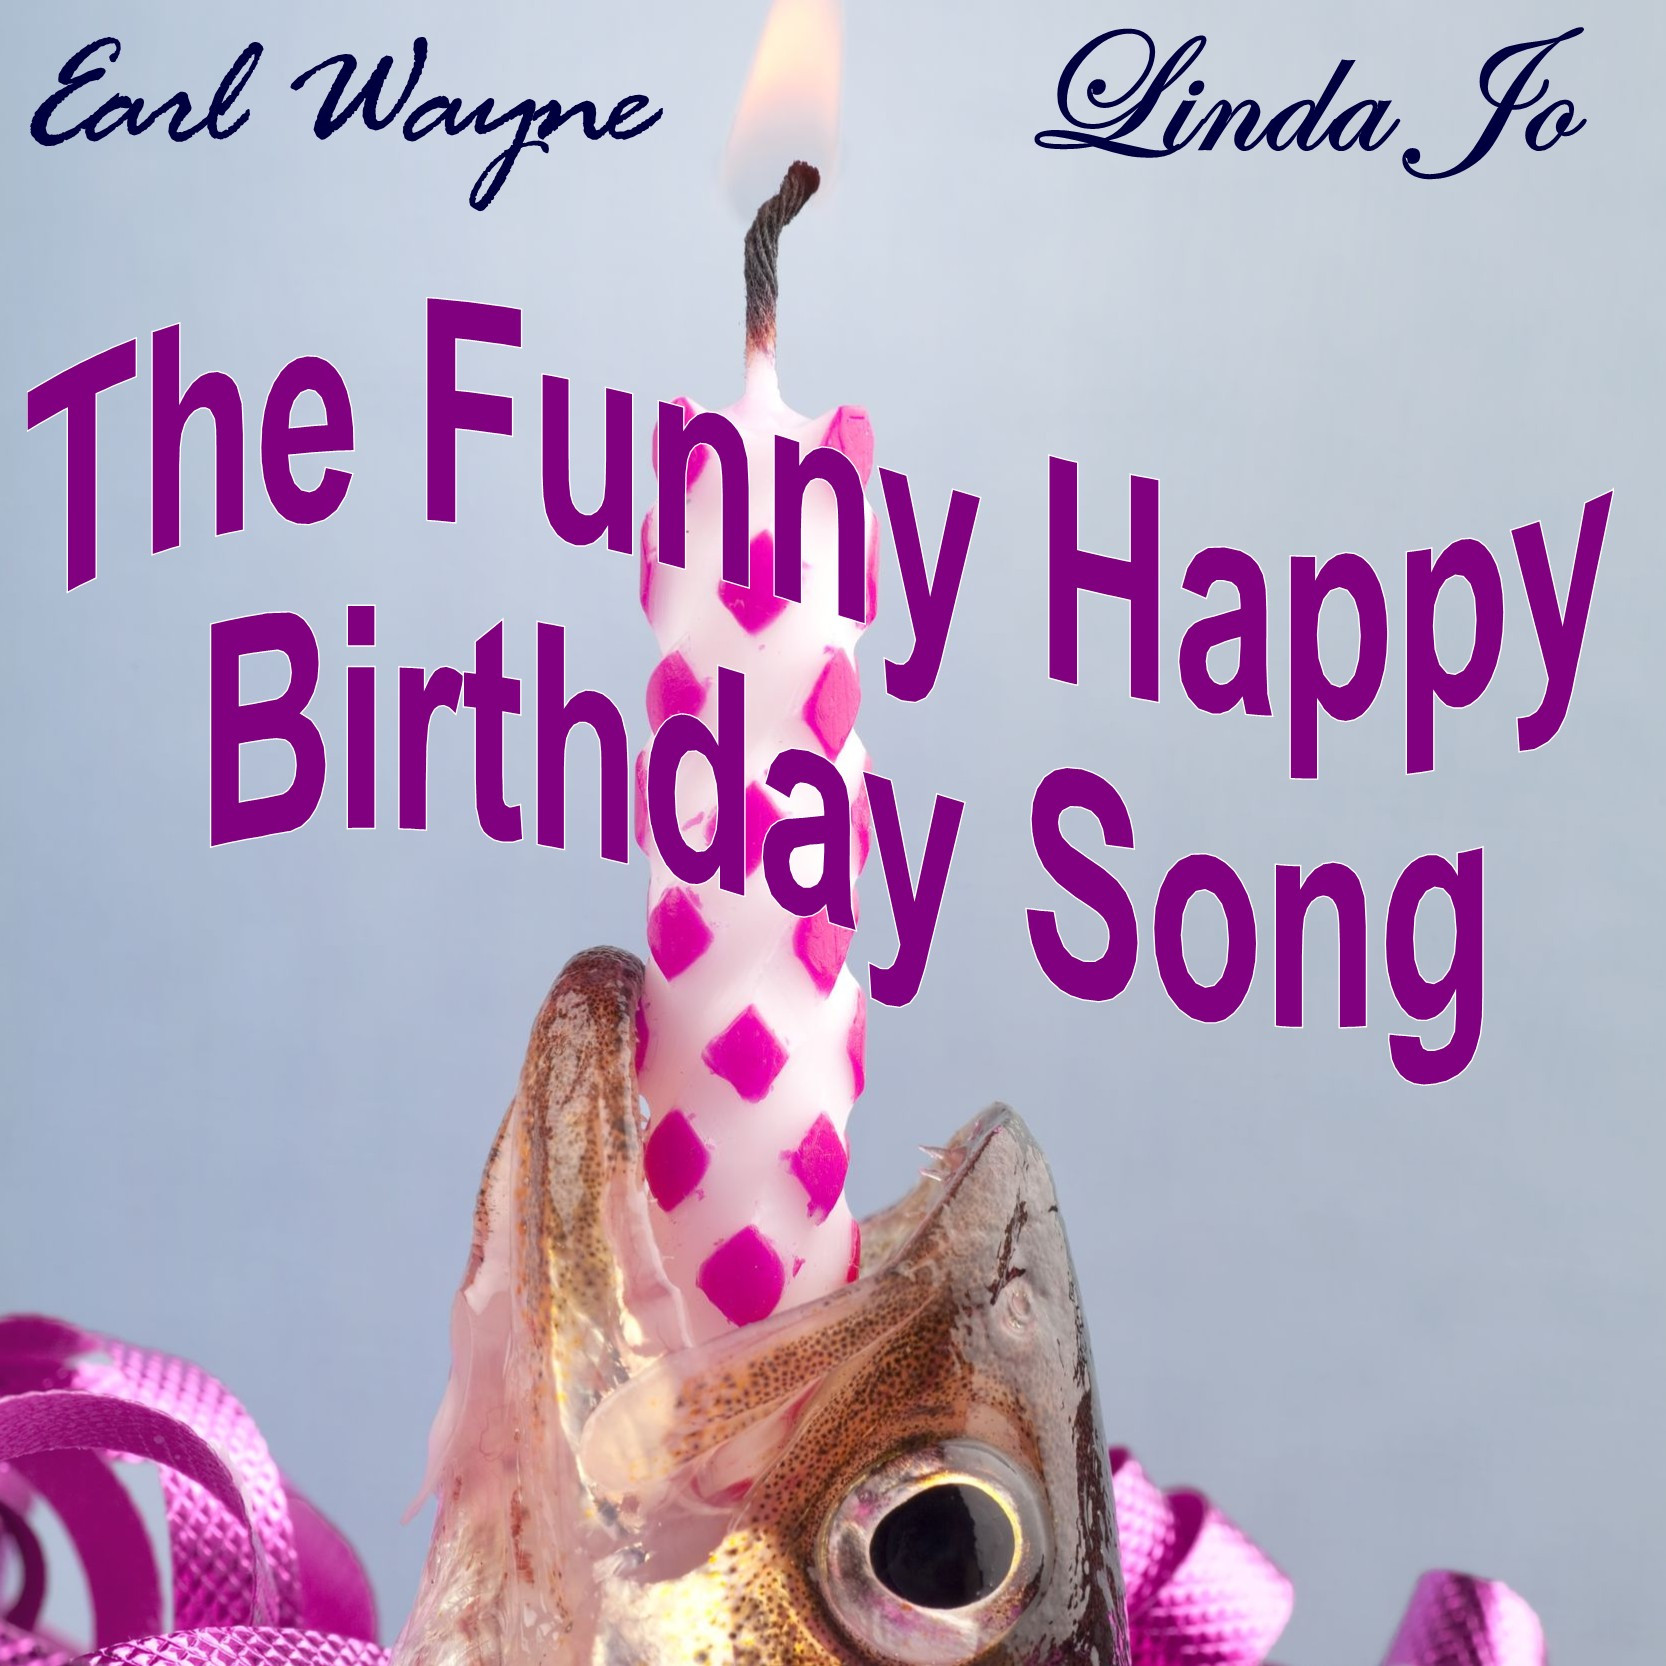 Best ideas about Funny Birthday Songs . Save or Pin The Funny Happy Birthday Song Now.